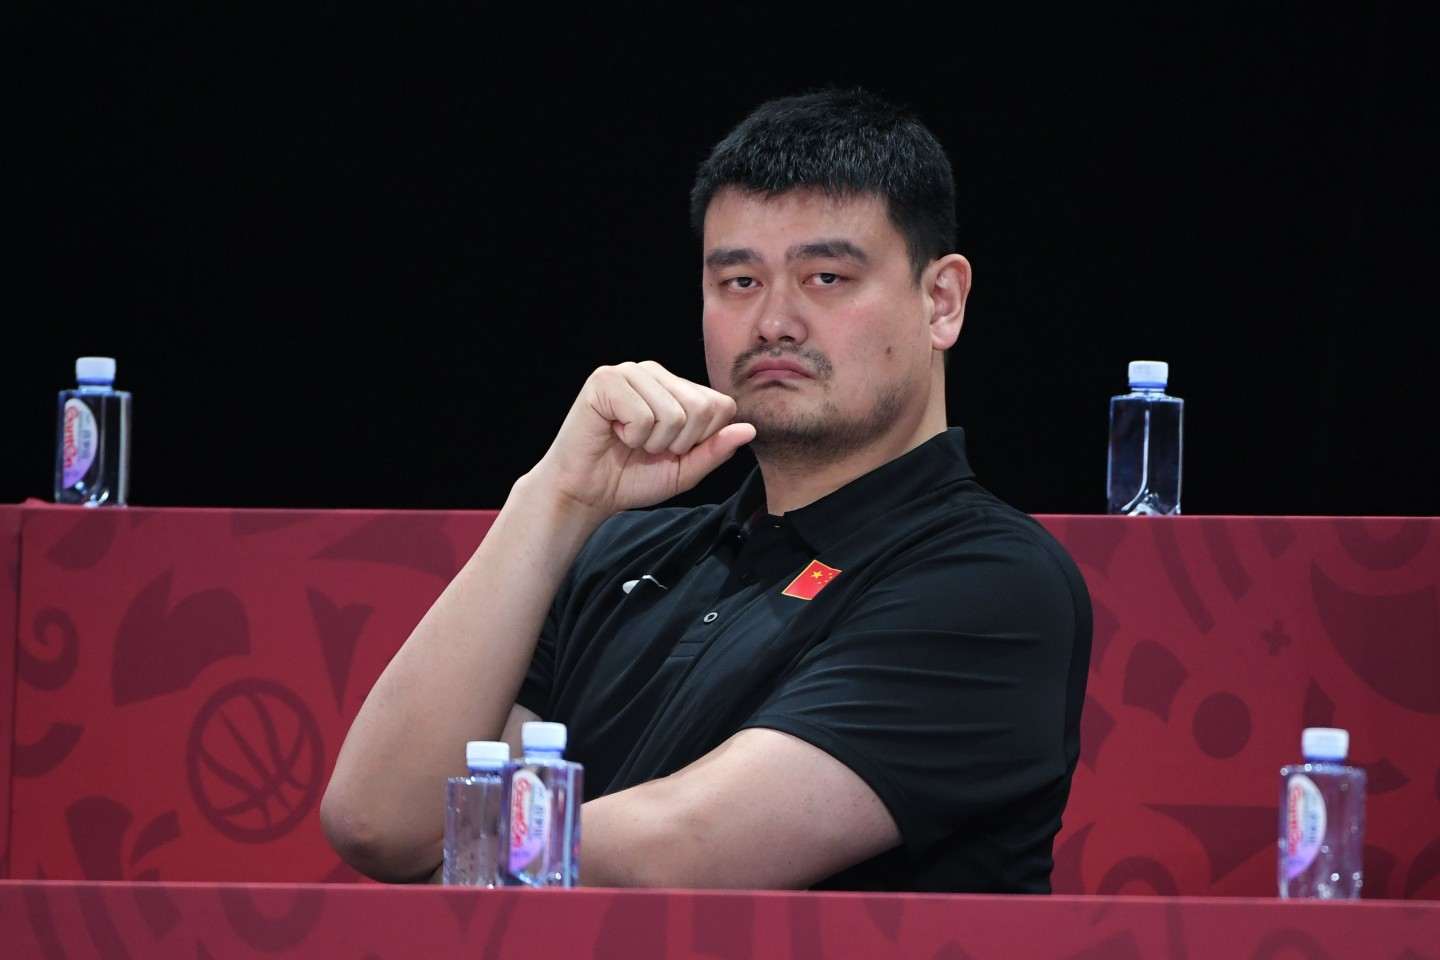 Imagine China as Yao Ming: Yao Ming has already grown up. It is possible to wound him but perhaps too late to curtail or hold back his growth. (AFP)